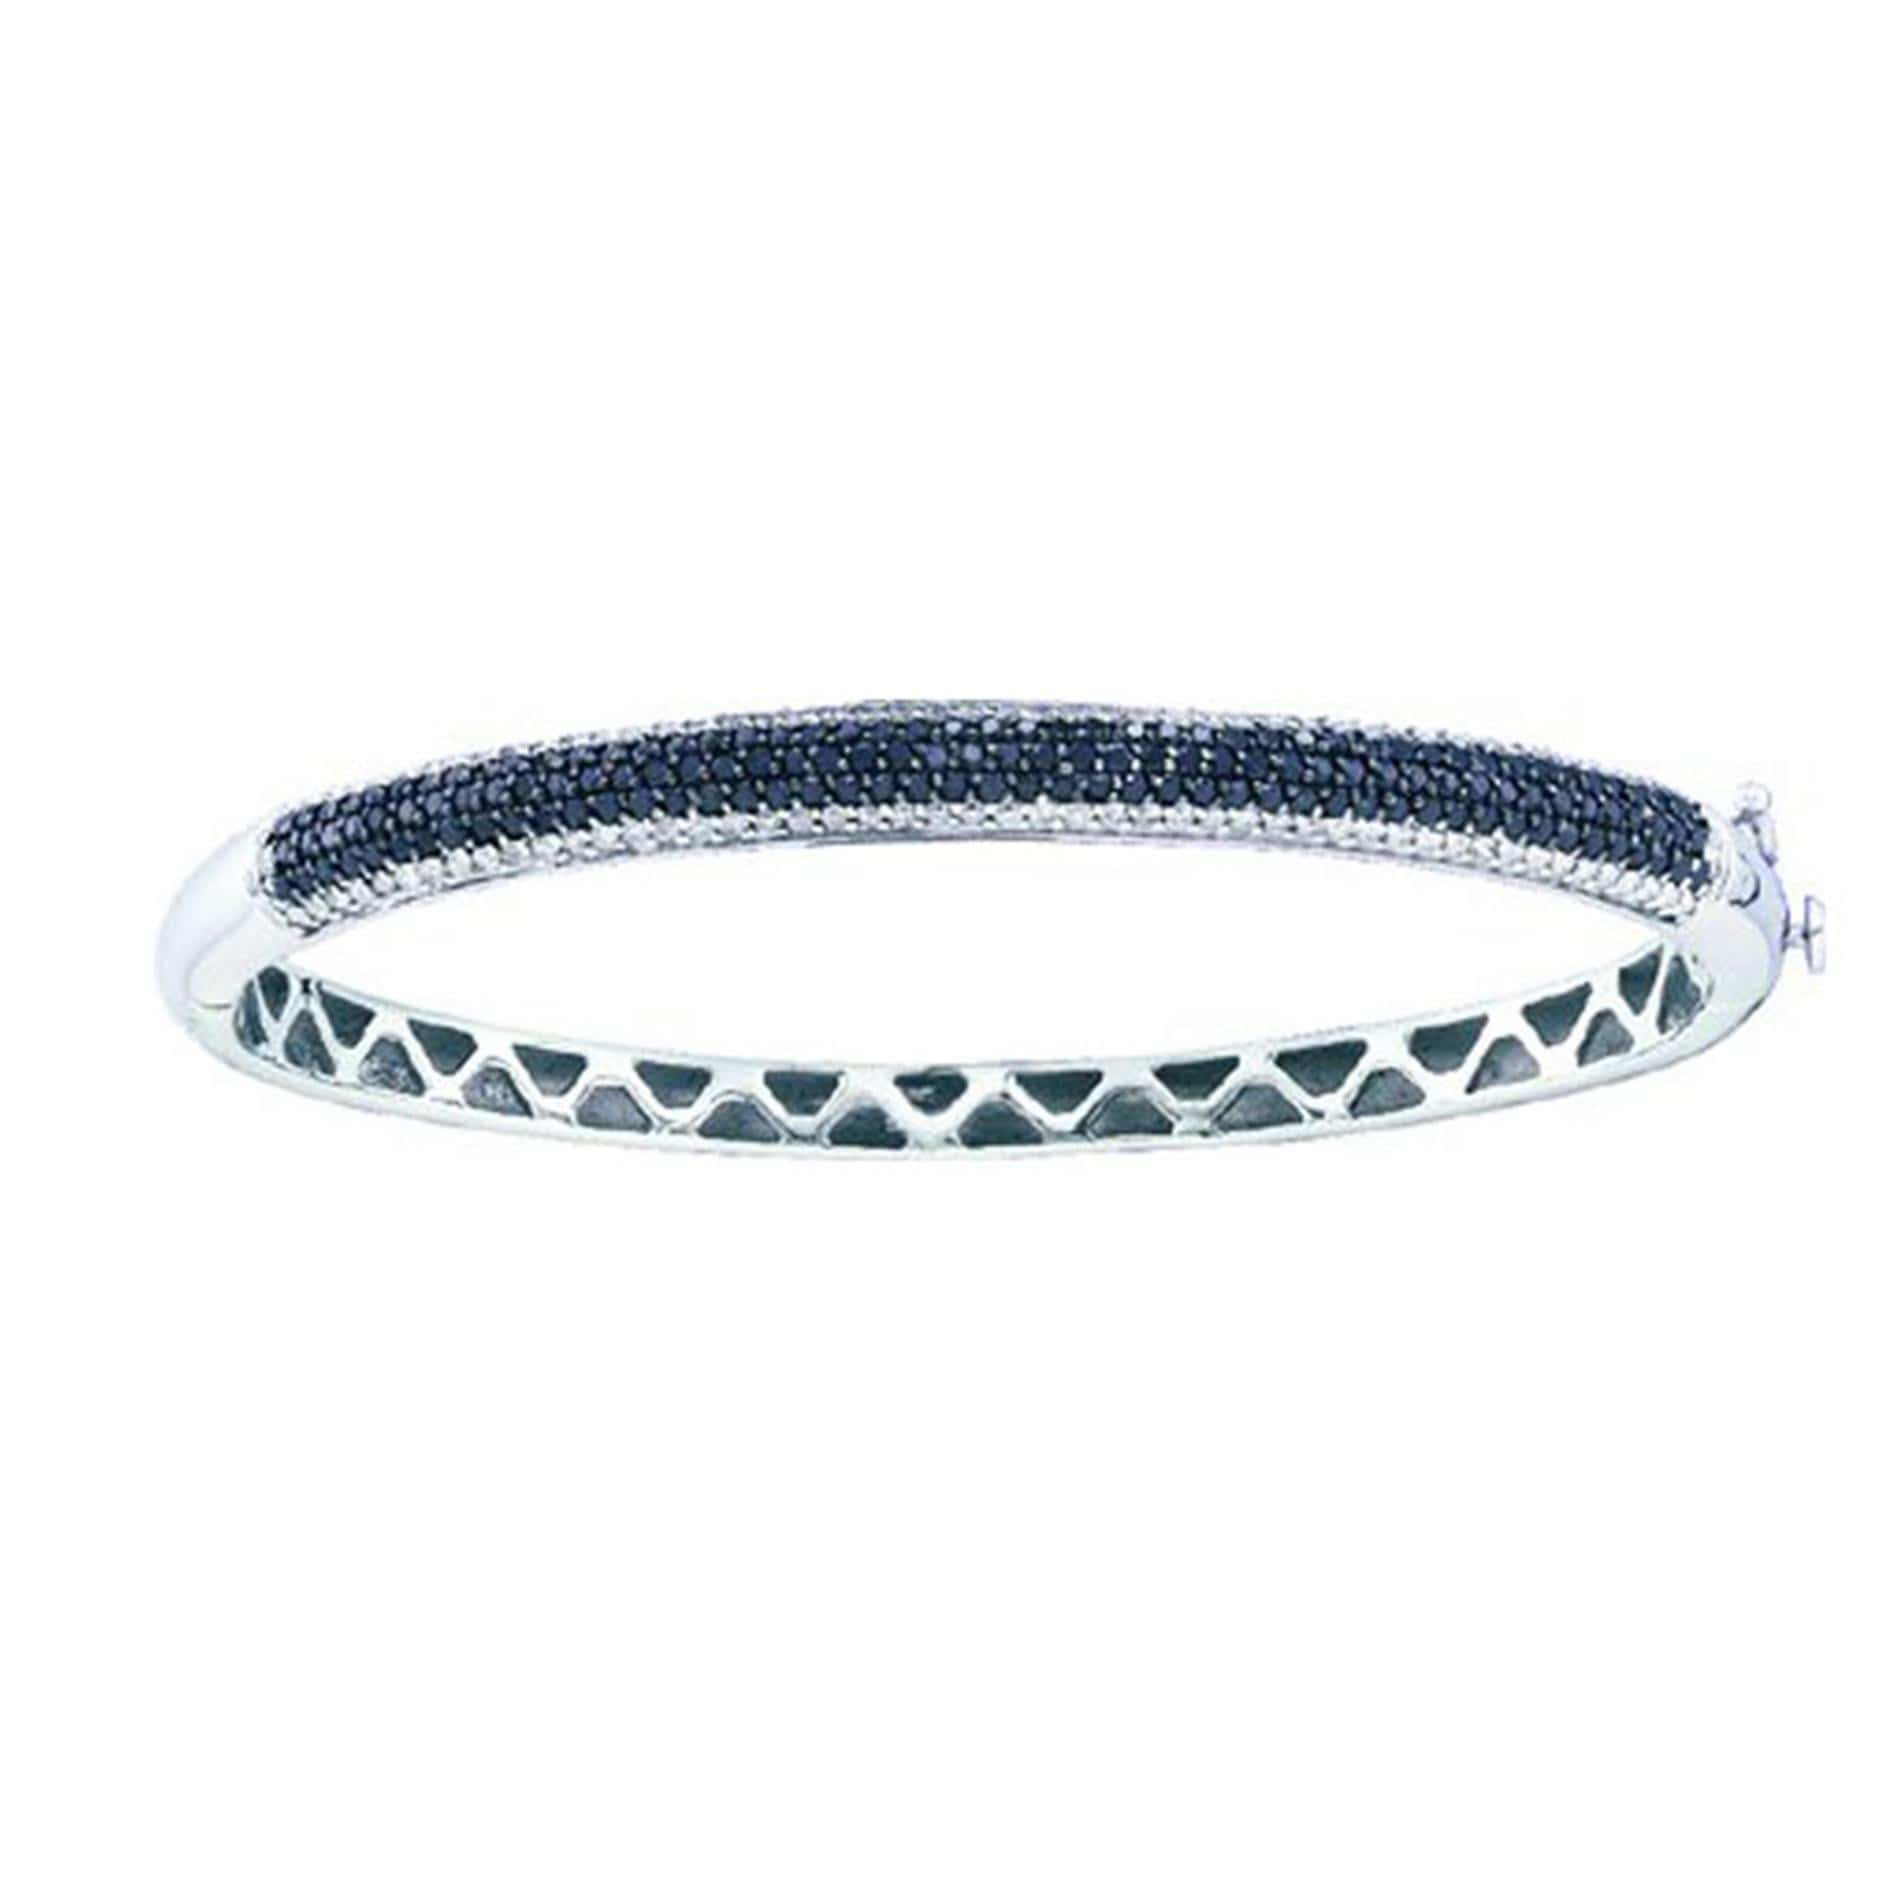 1.48CT Black/White Diamond 14K White Gold Bangle Bracelet: